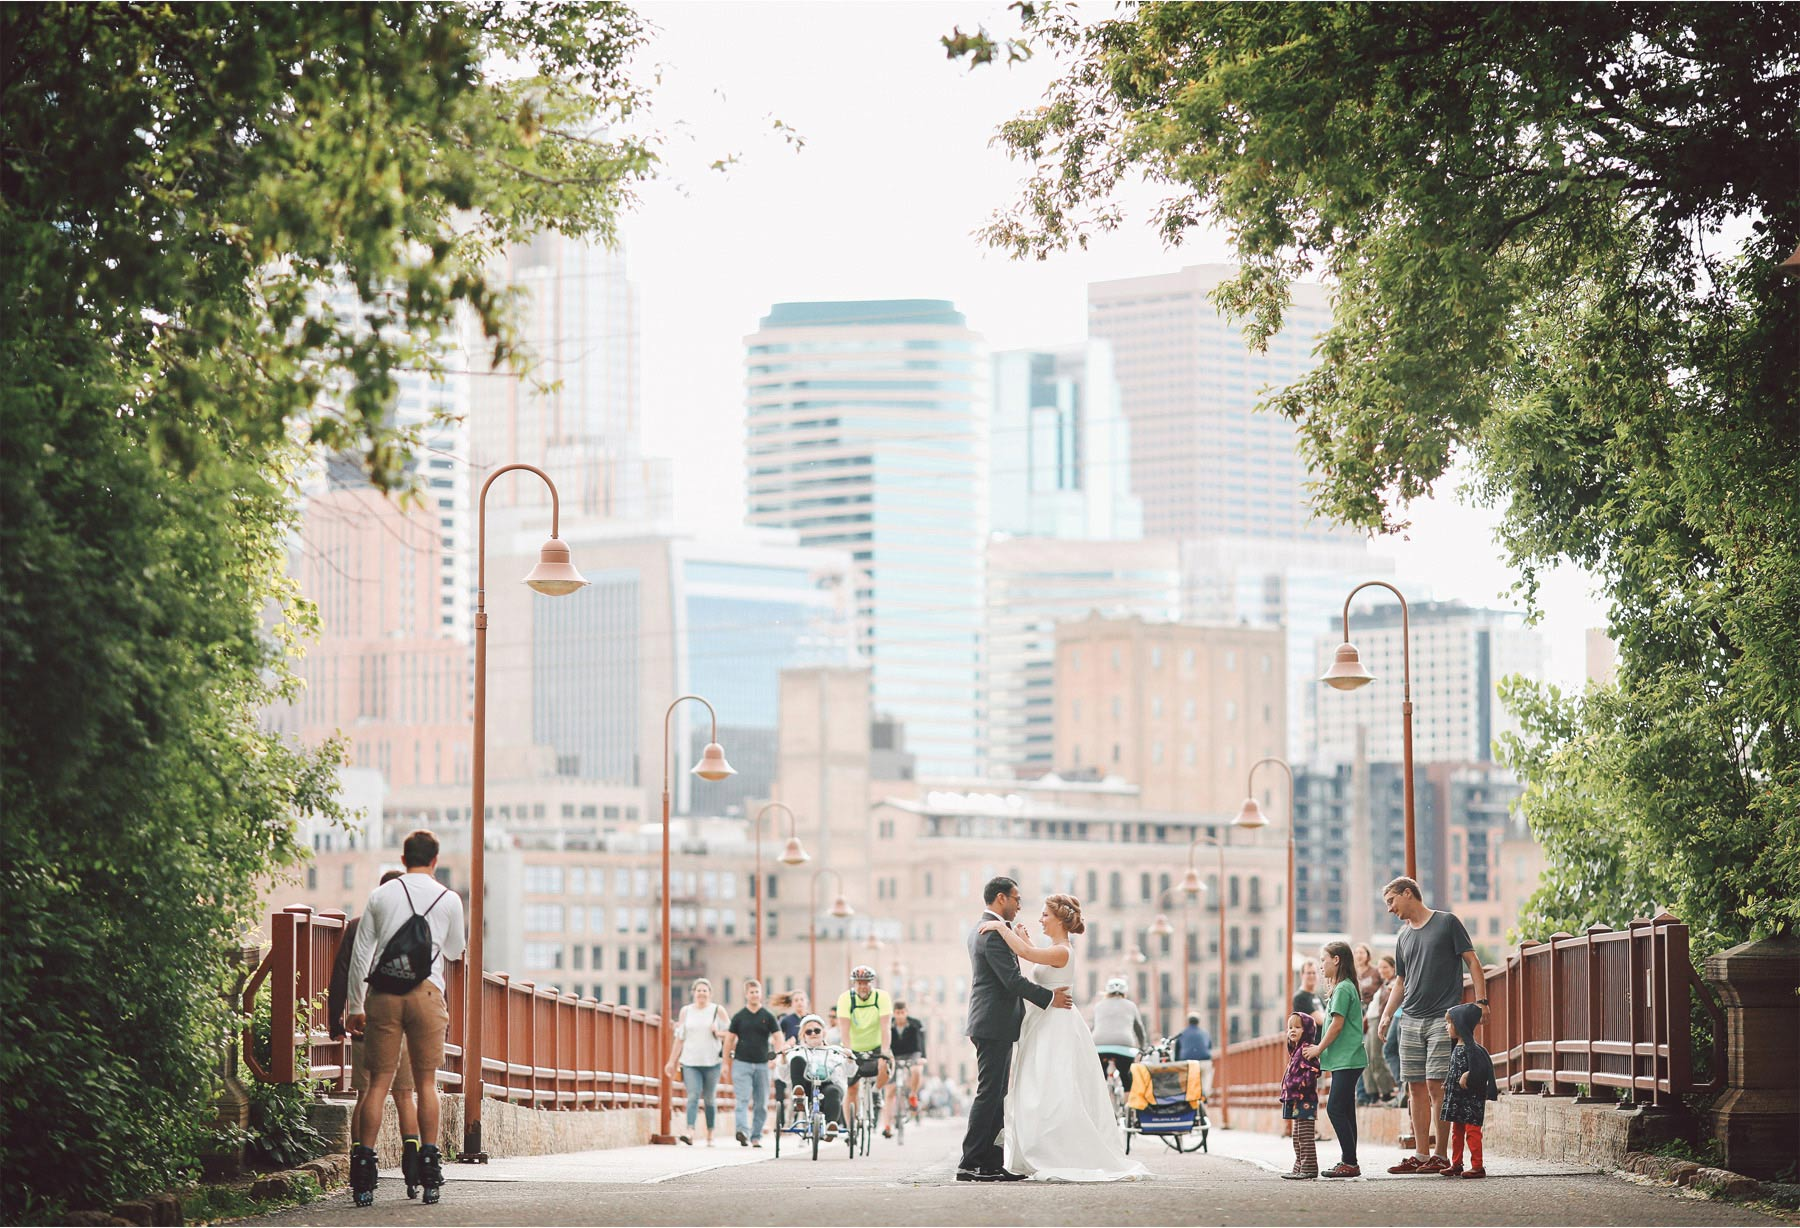 18-Minneapolis-Minnesota-Wedding-Photographer-by-Andrew-Vick-Photography--Spring-Stone-Arch-Bridge-Bride-Groom-Pedestrians-Downtown-Skyline-Dance-Vintage-Rachel-and-Venu.jpg